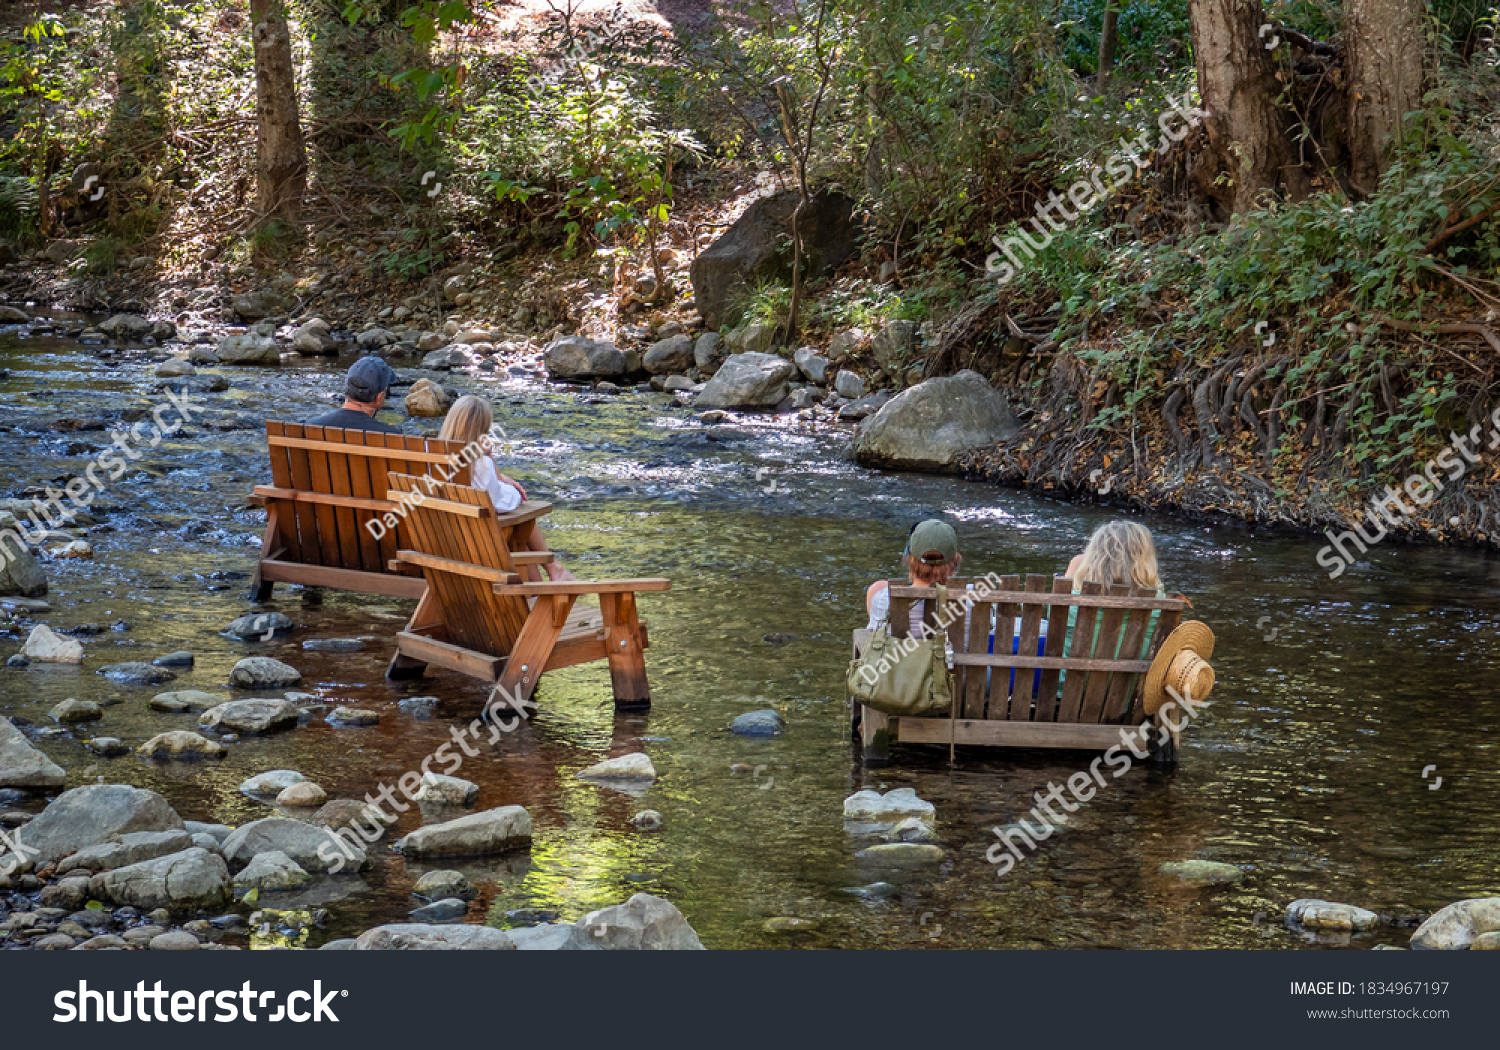 People enjoy the afternoon sitting in wooden chairs placed in the Big Sur River, in California.